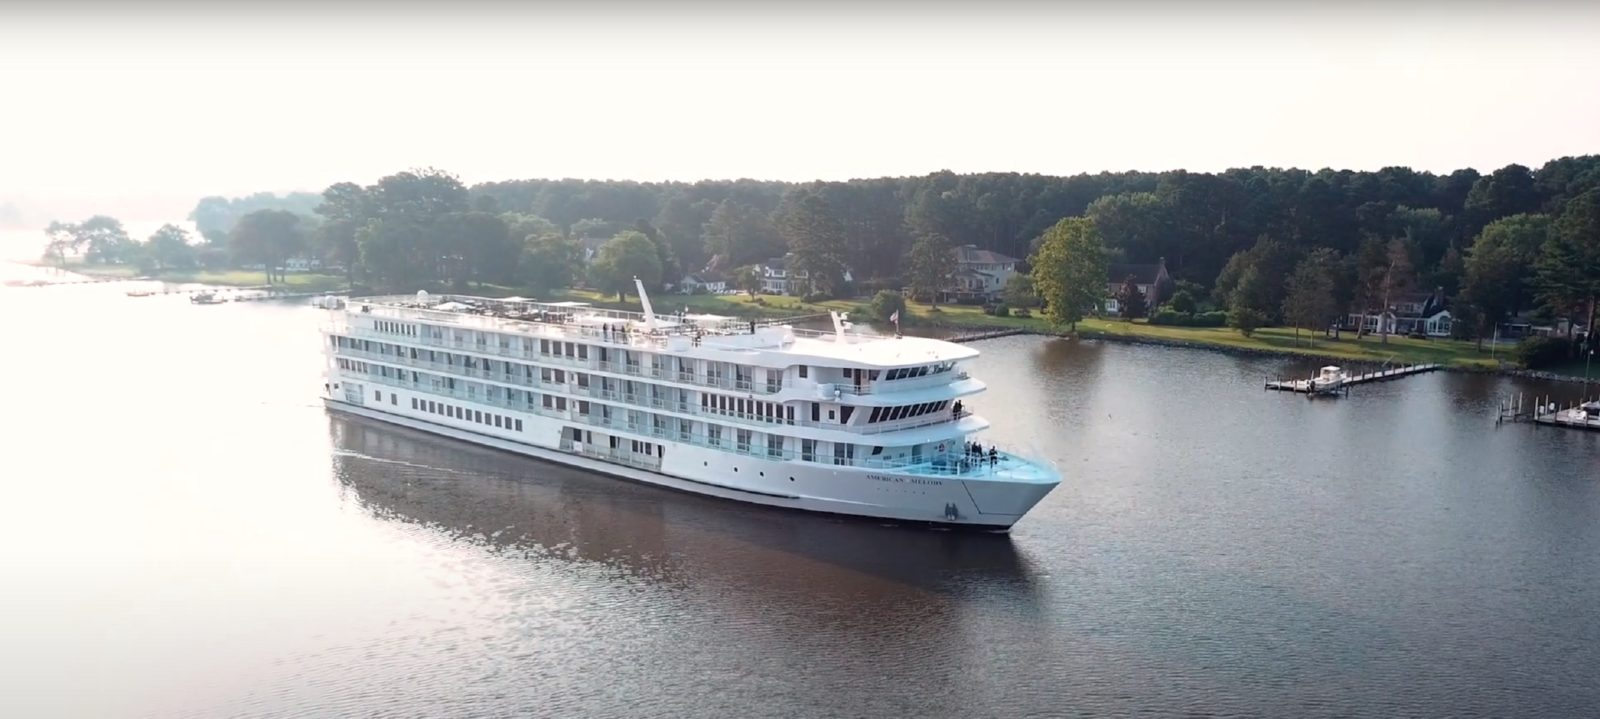 american-cruise-lines-kicks-off-its-longest-river-cruise-so-far,-on-its-newest-riverboat